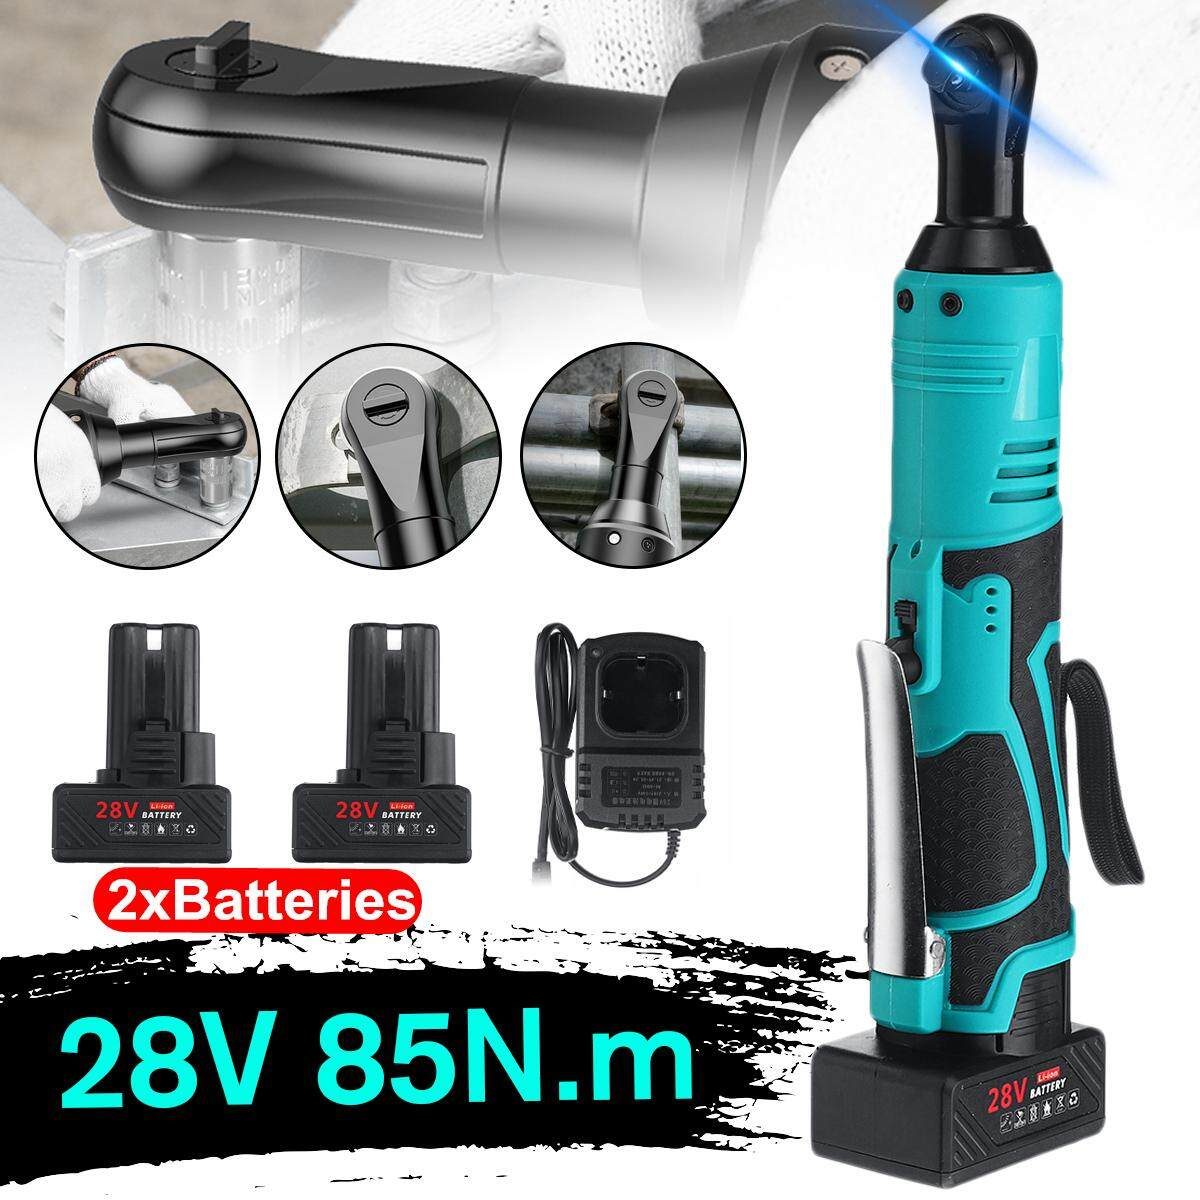 28V 7800mAh 2 x Batteries & Charger Kit 260RPM 85N.m 3/8 Cordless Electric Ratchet Wrench Tool With LED Working Light